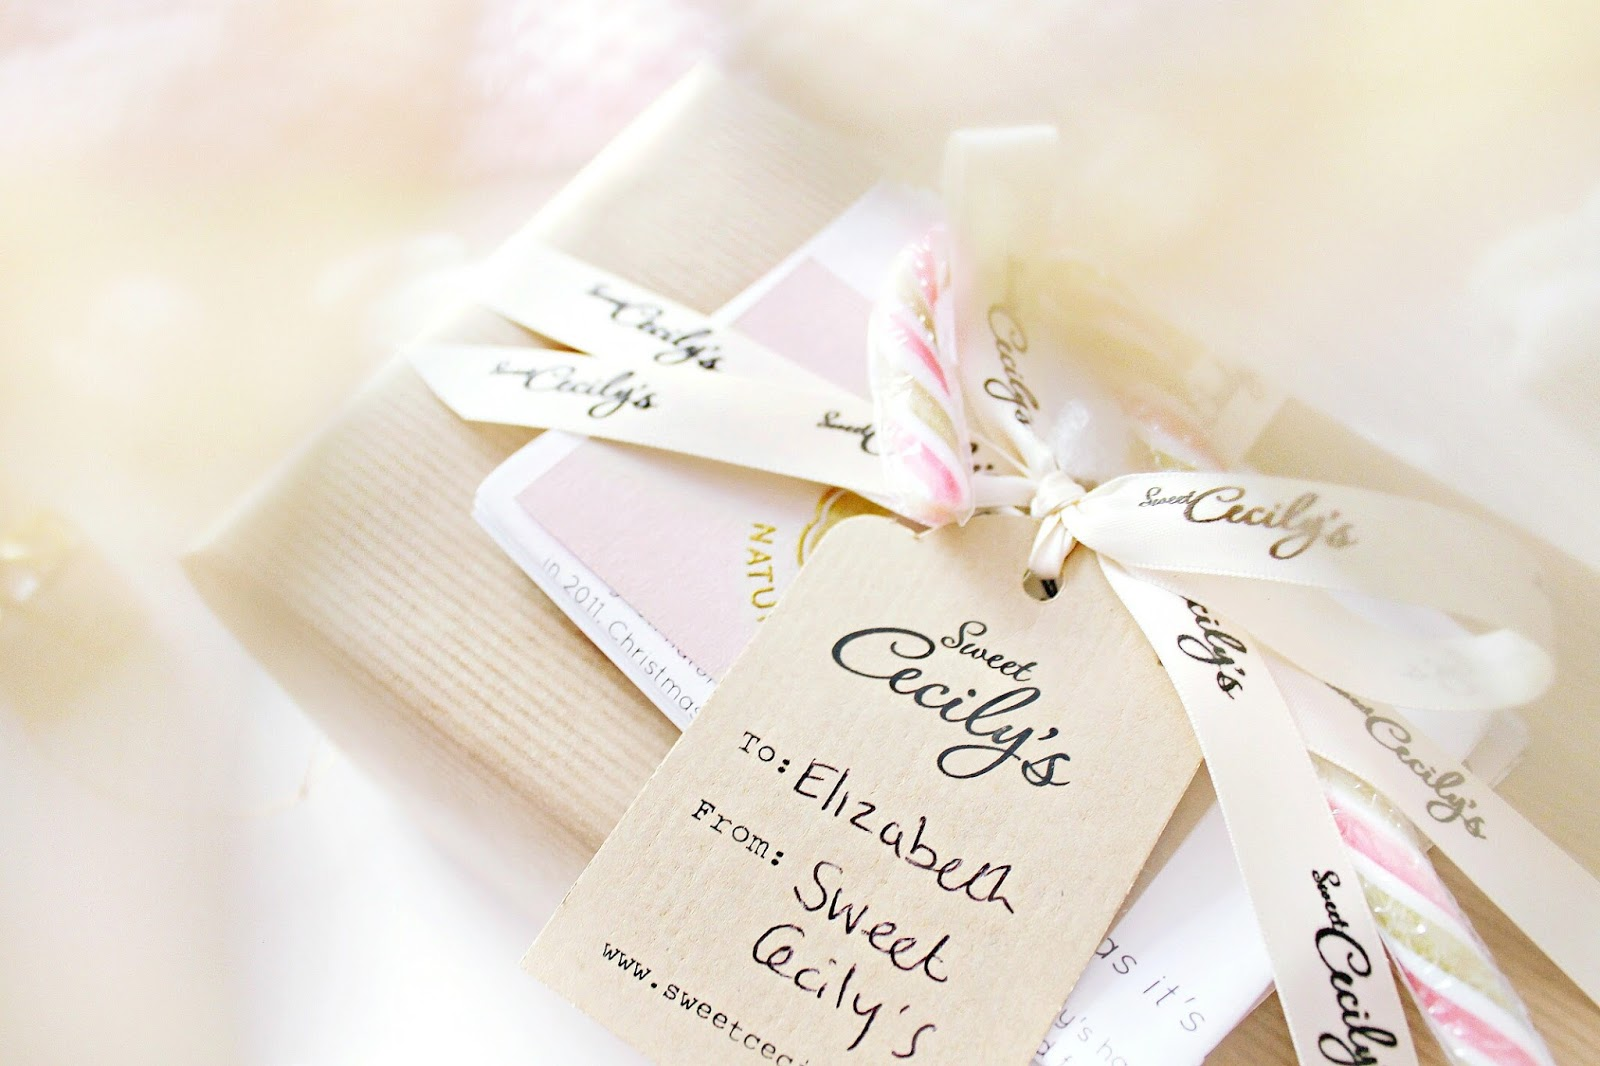 Sweet Cecily's Secret Santa package review